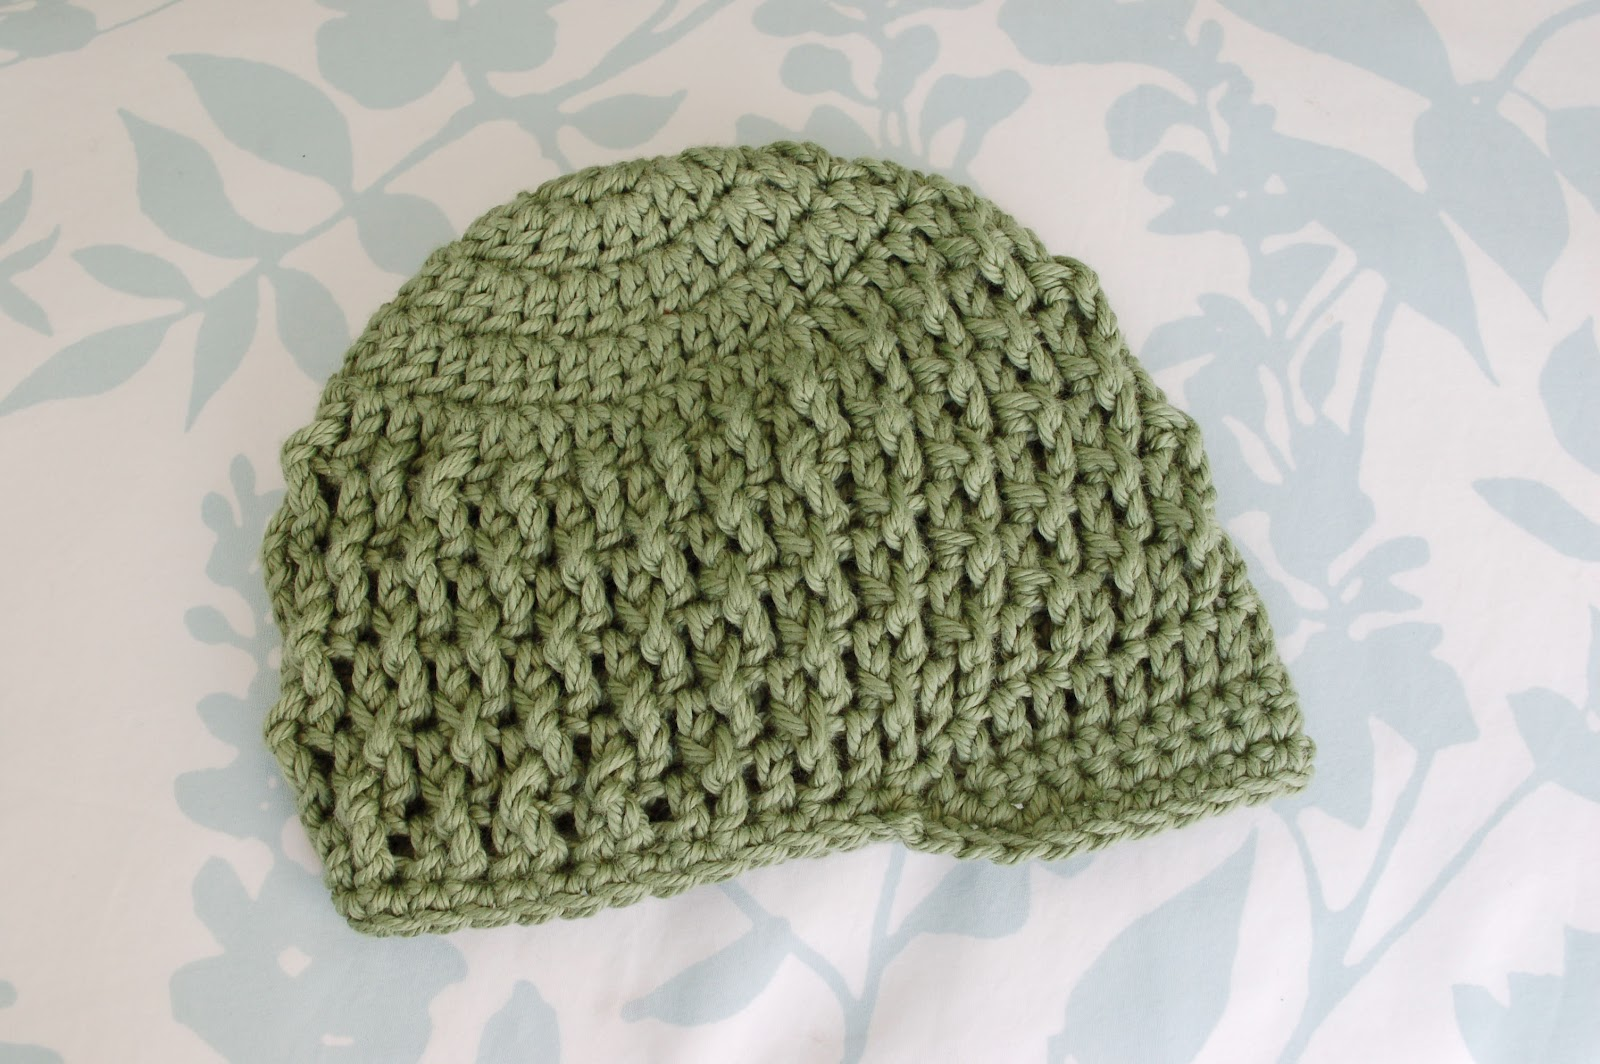 Crochet Hat Pattern For 8 Month Old : Alli Crafts: Free Pattern: Deeply Textured Hat - 3 months